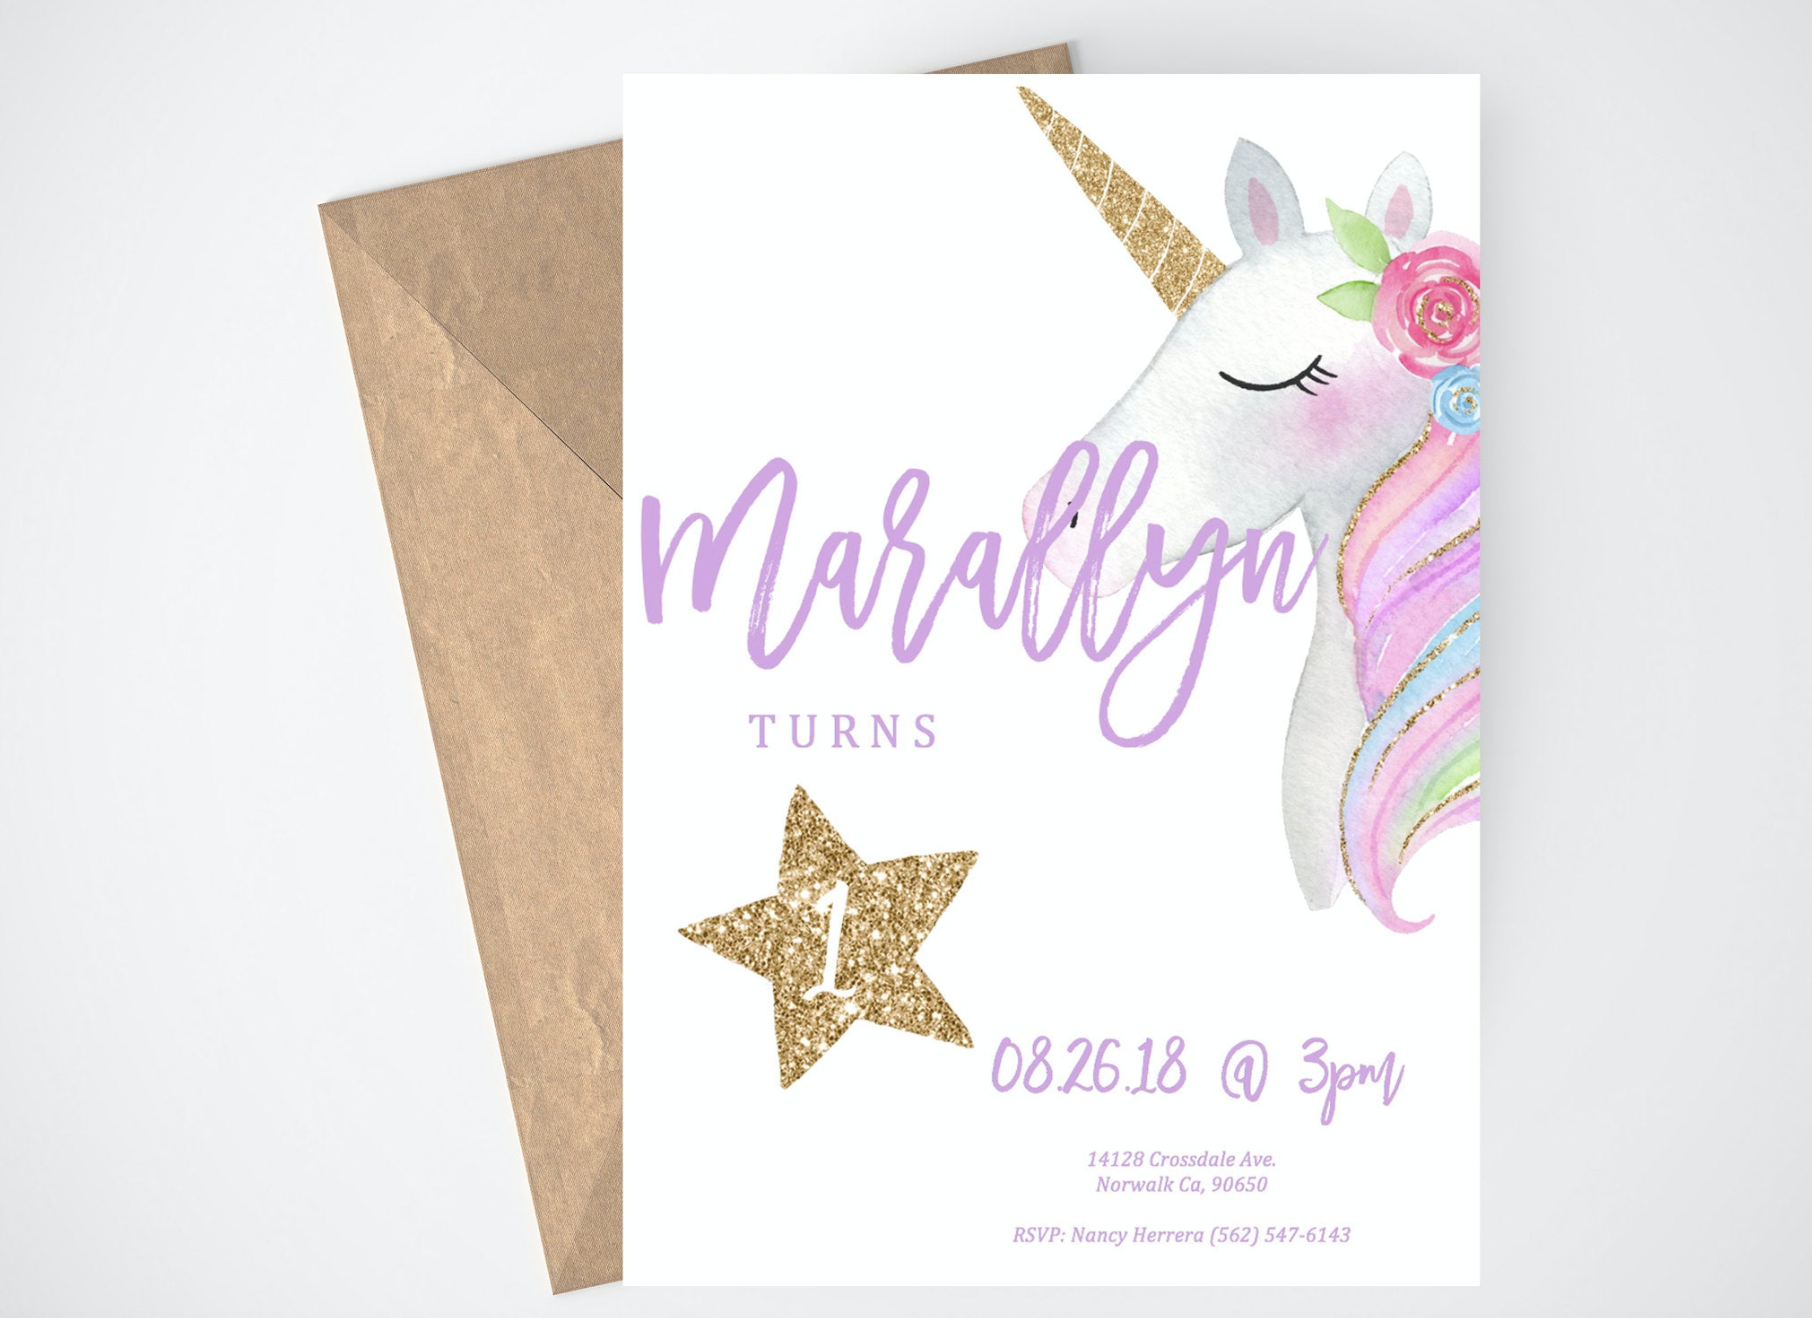 Unicorn Birthday Party Invitation - Unicorn birthday invitations, Printable unicorn invitations, Unicorn invitations, Unicorn birthday party invitation, Unicorn birthday parties, Printable birthday invitations - Happy Birthday! This unicorn birthday party invitation is a must have for your party! Featuring beautiful watercolor unicorn head, and gold accents, this printable invitation will set the perfect tone for your unicorn theme birthday party  The best part about this beautiful unicorn birthday party invitation  It's as easy as purchase, download, fill in and print! We love invitation templates that are instant downloads